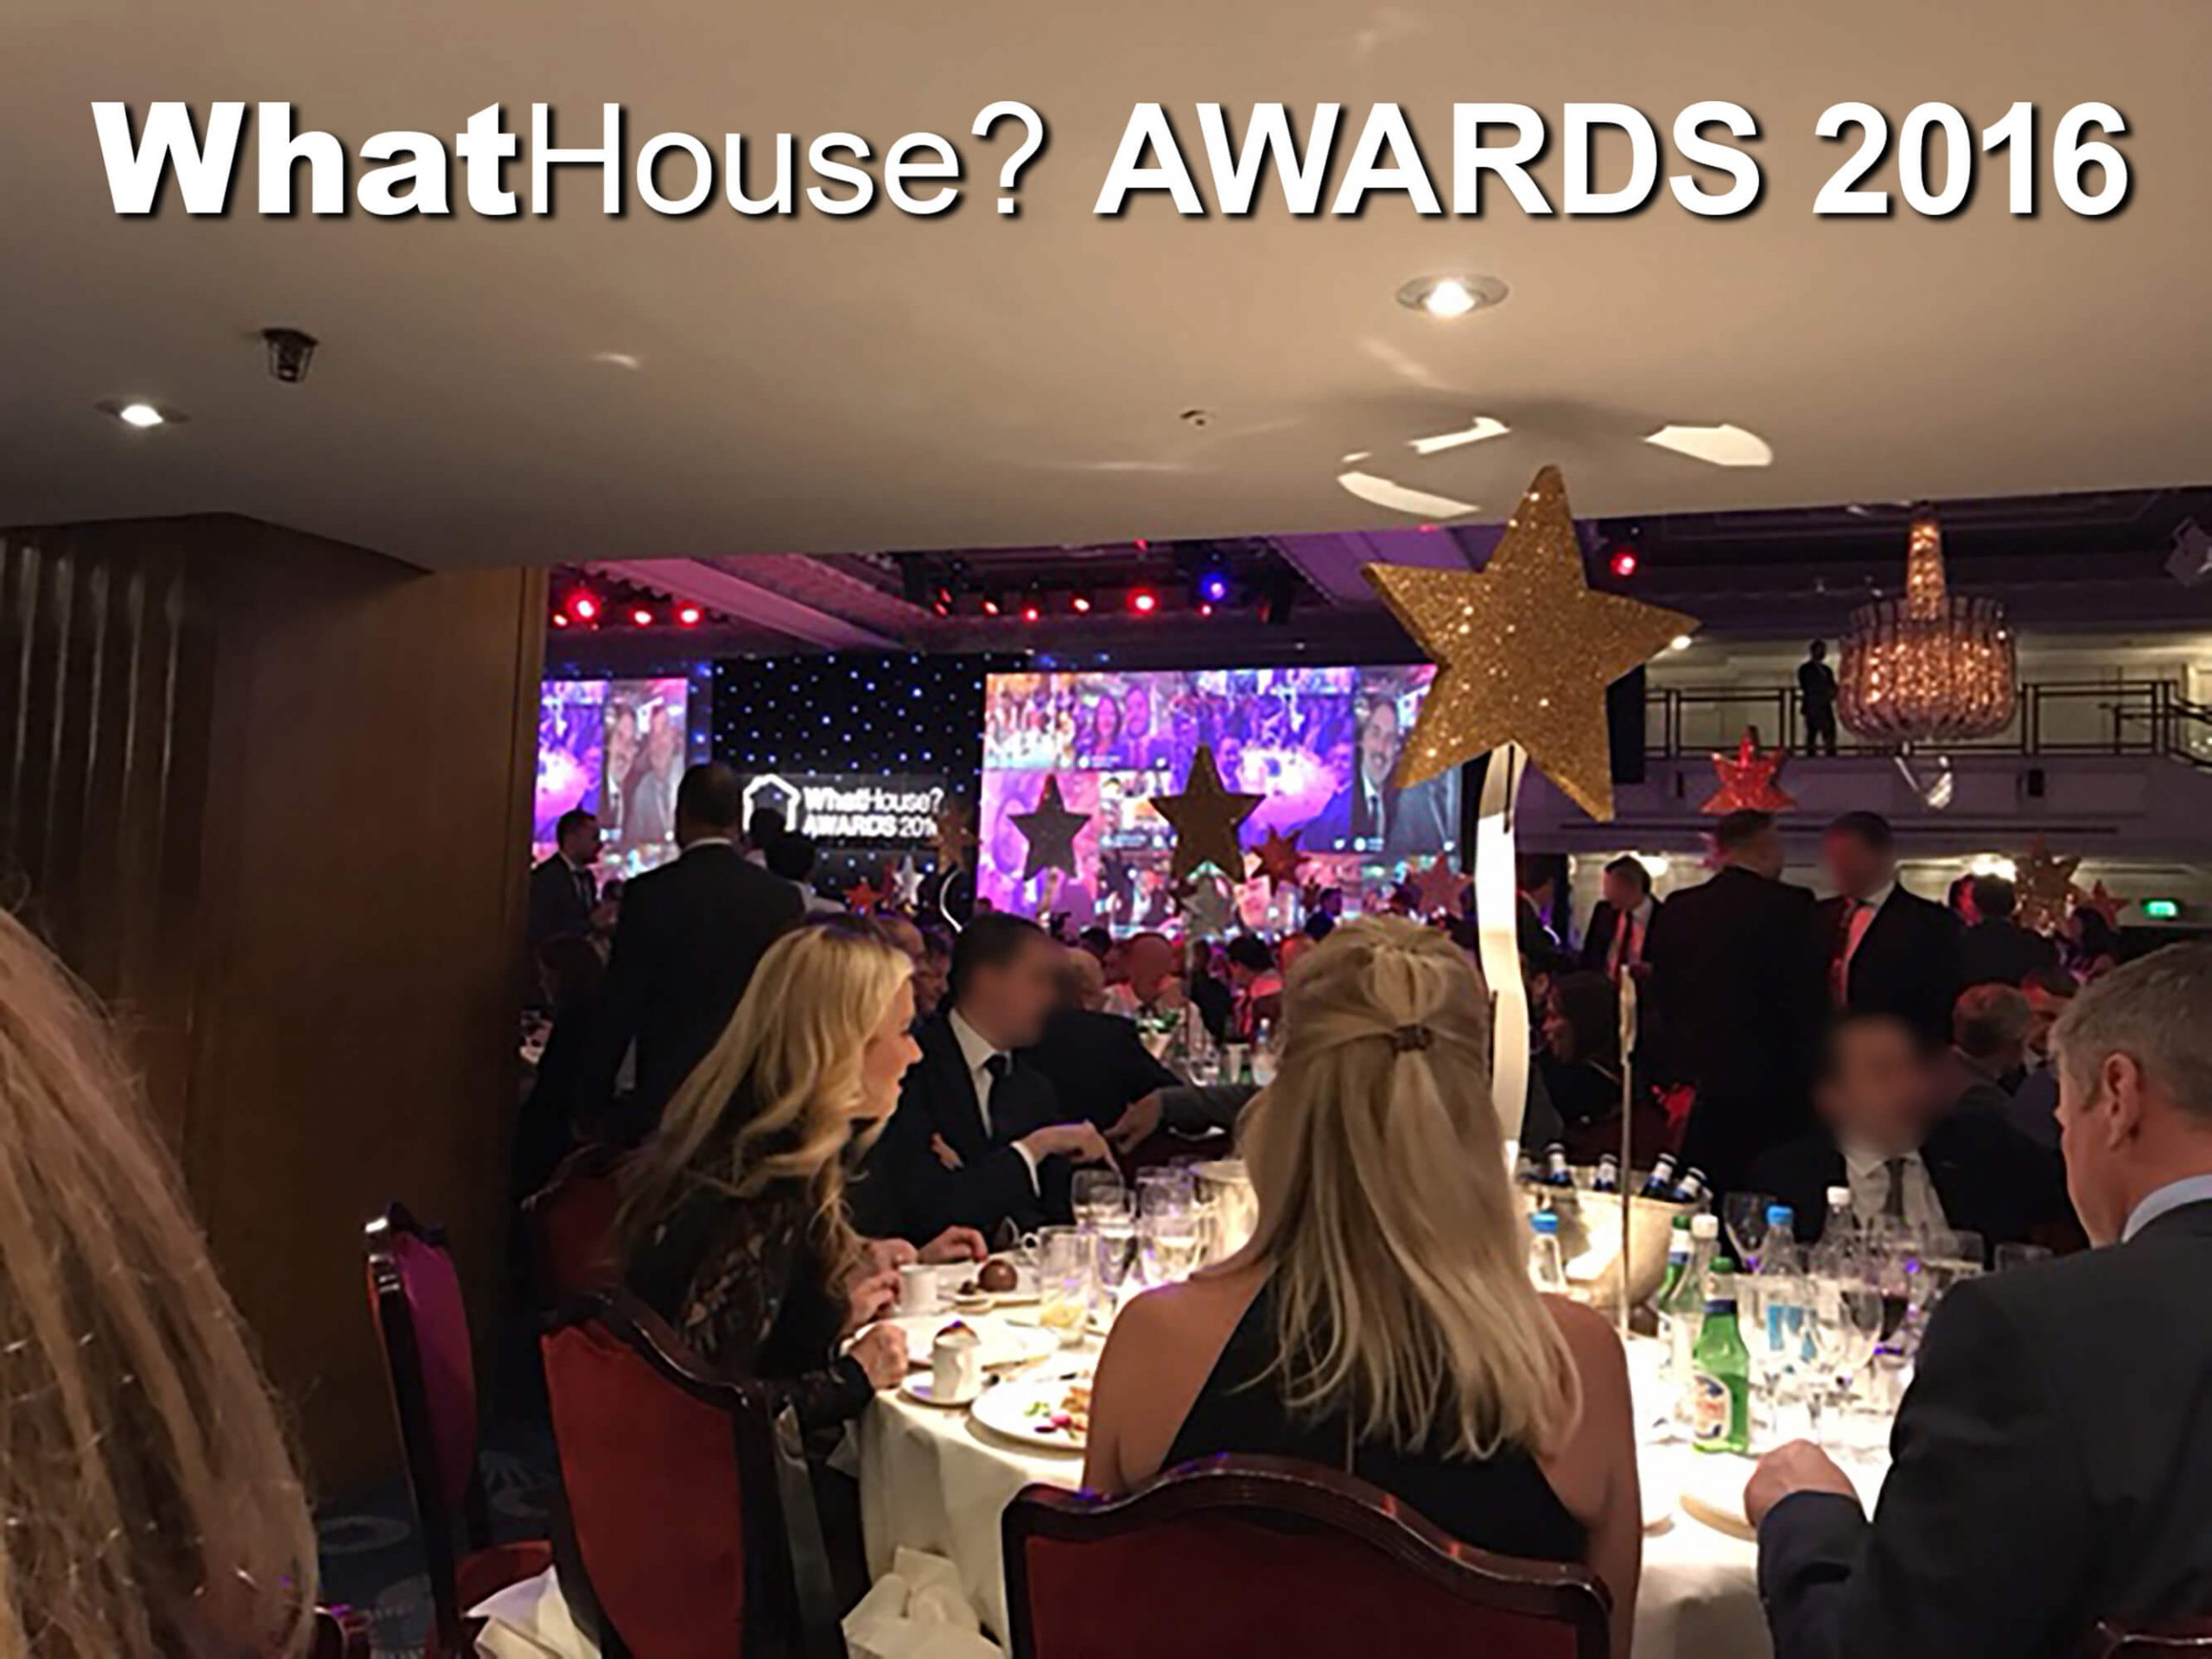 WhatHouse? Awards